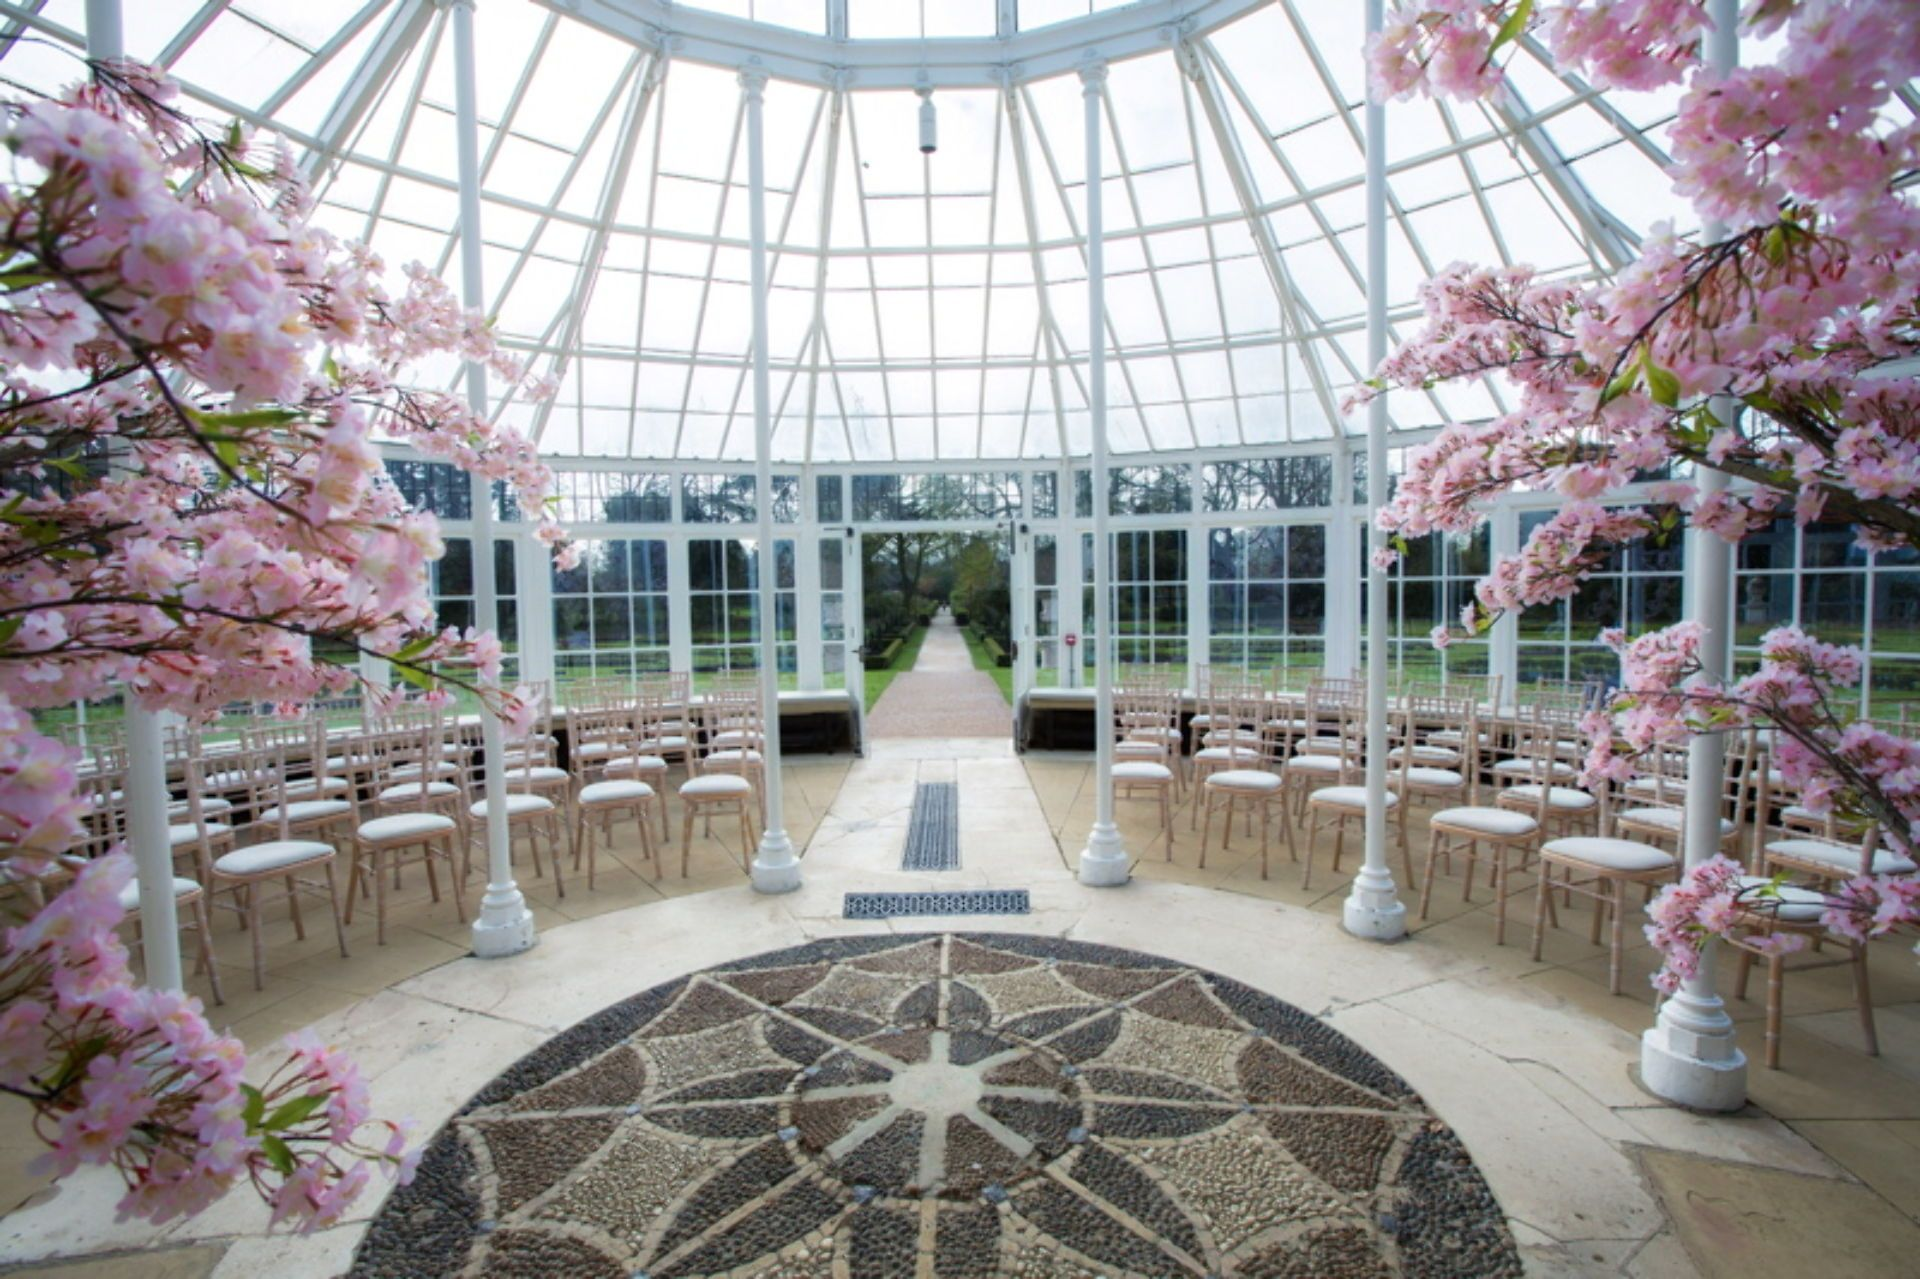 Ceremony Set Up At Chiswick House Gardens Conservatory